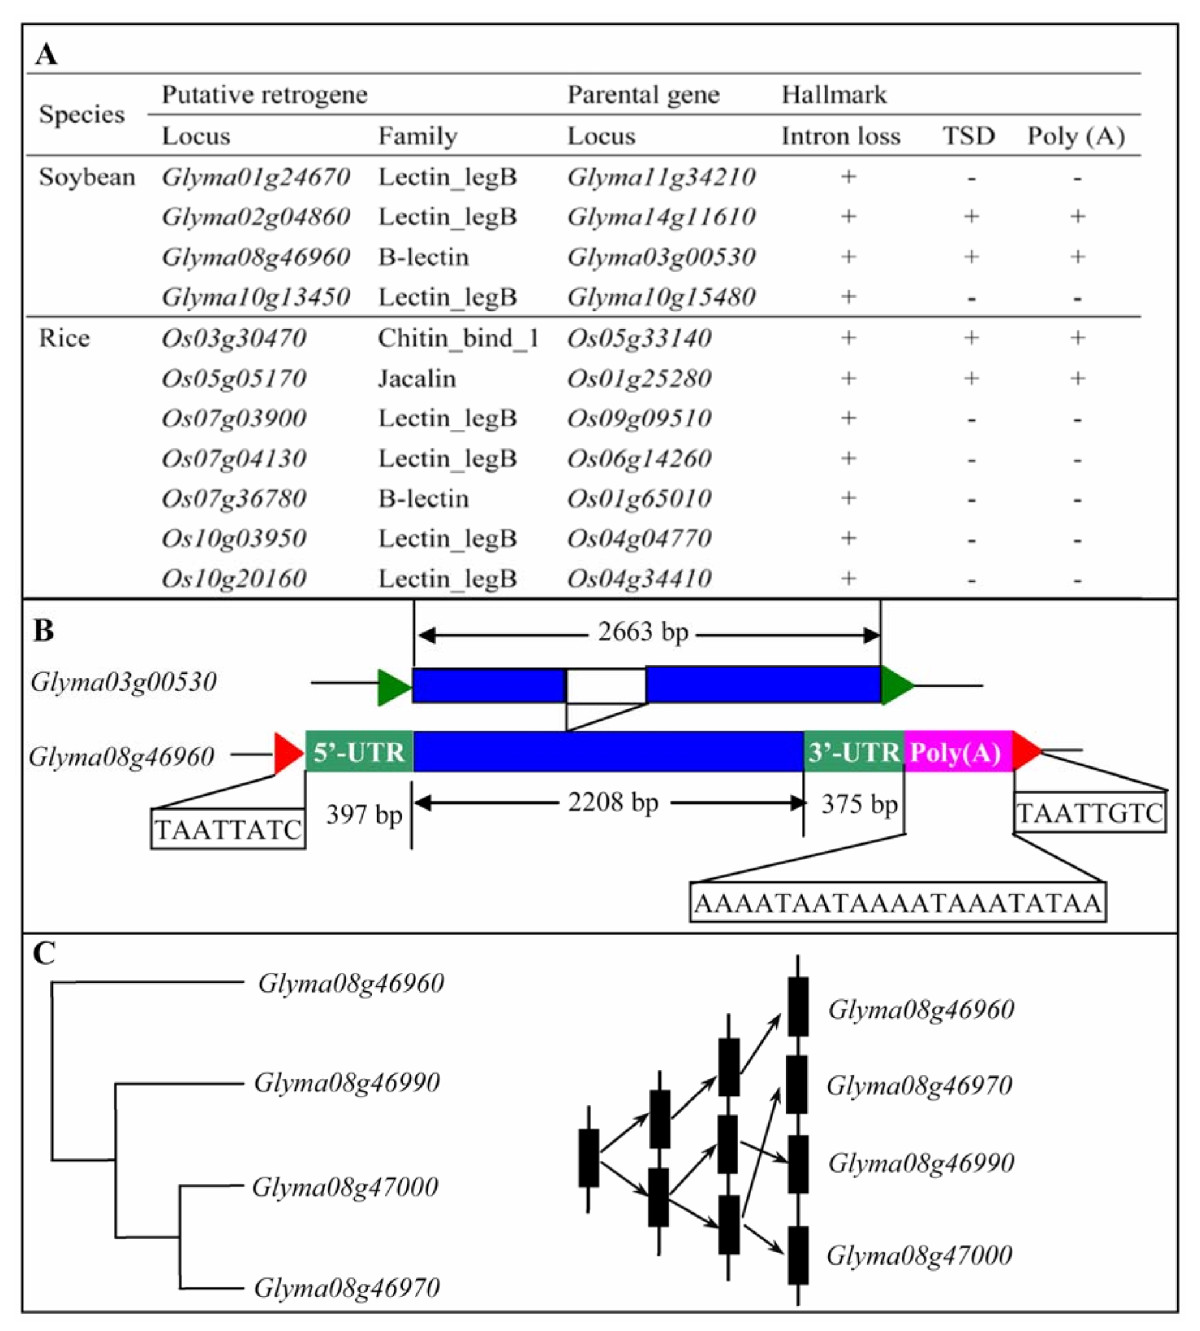 https://static-content.springer.com/image/art%3A10.1186%2F1471-2148-10-79/MediaObjects/12862_2009_Article_1295_Fig8_HTML.jpg